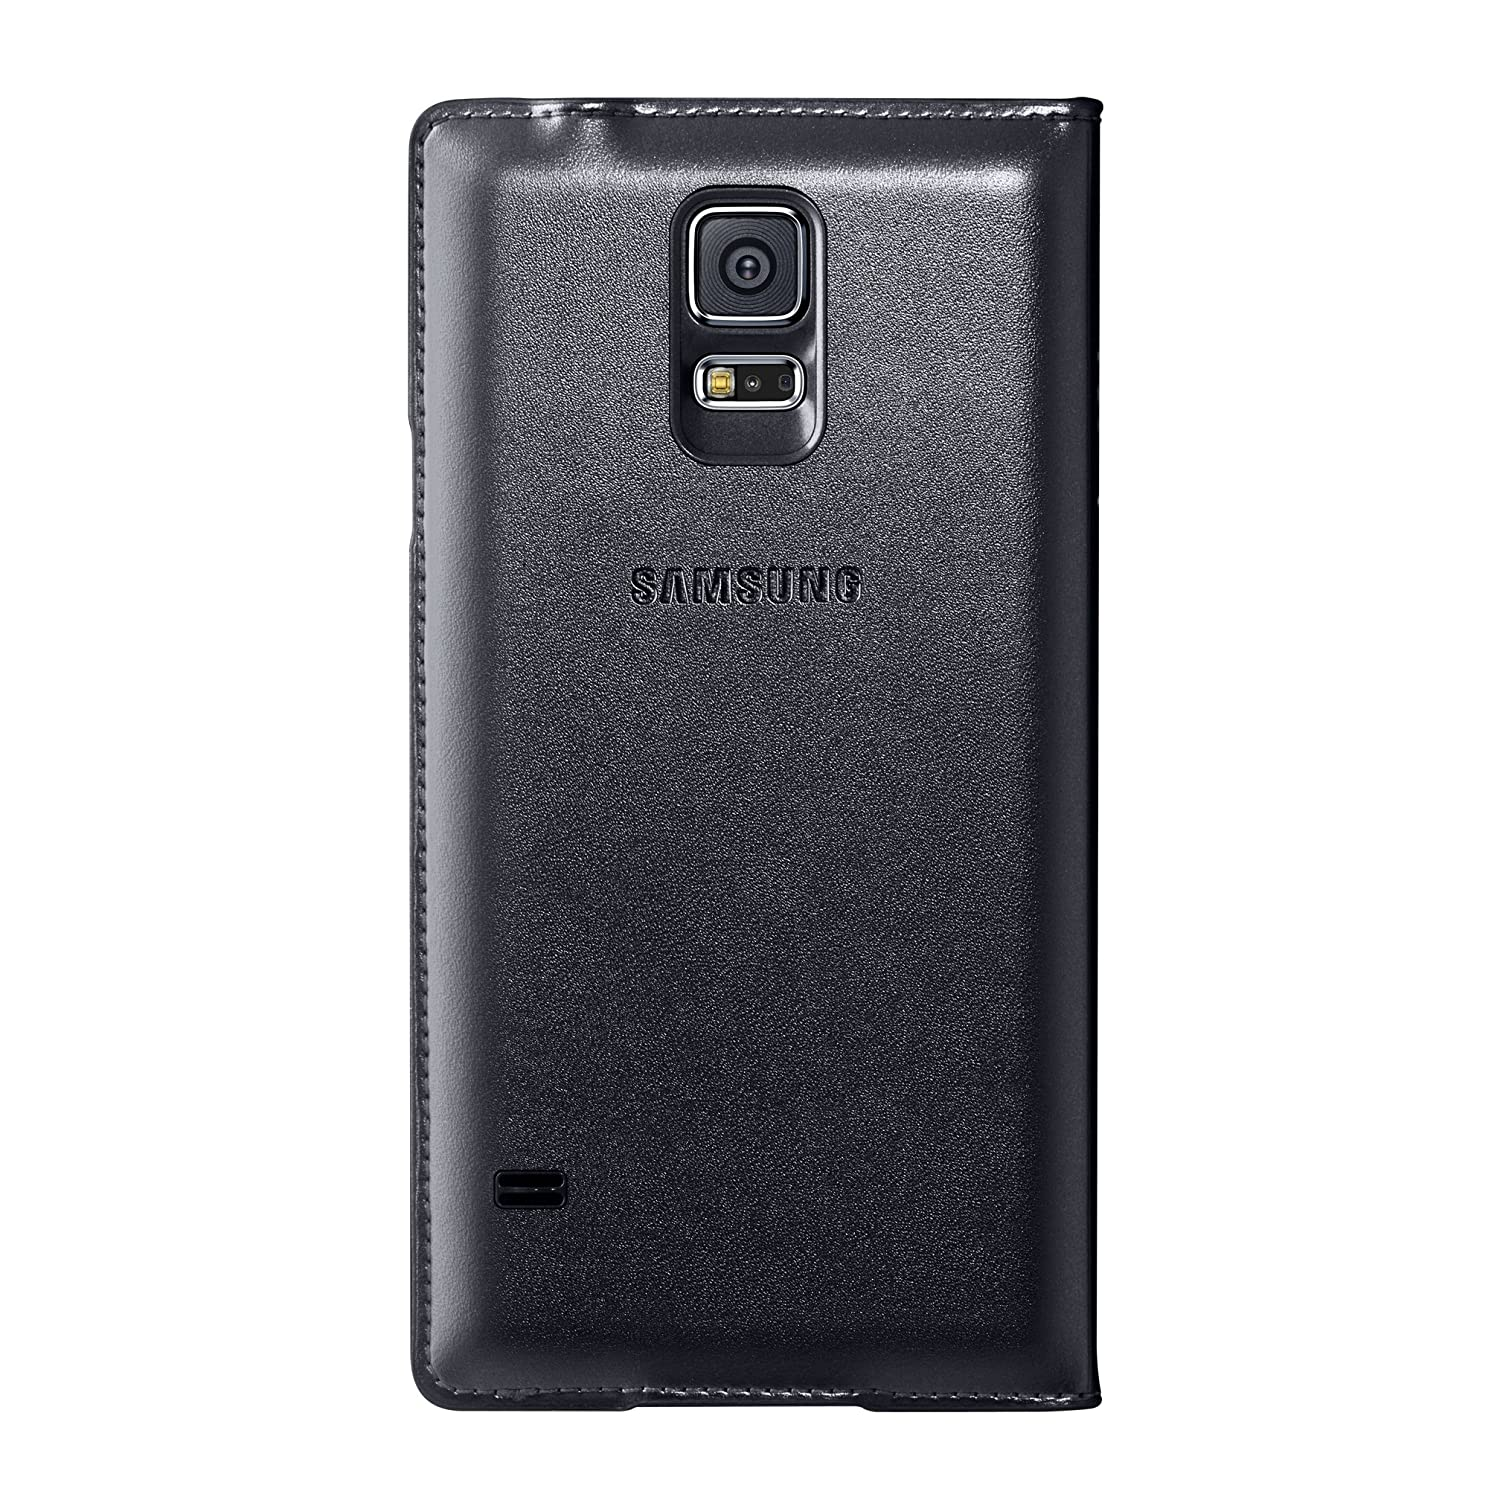 samsung s view flip cover for samsung galaxy s5 retail packaging blacksamsung s view flip cover for samsung galaxy s5 retail packaging black amazon ca cell phones \u0026 accessories